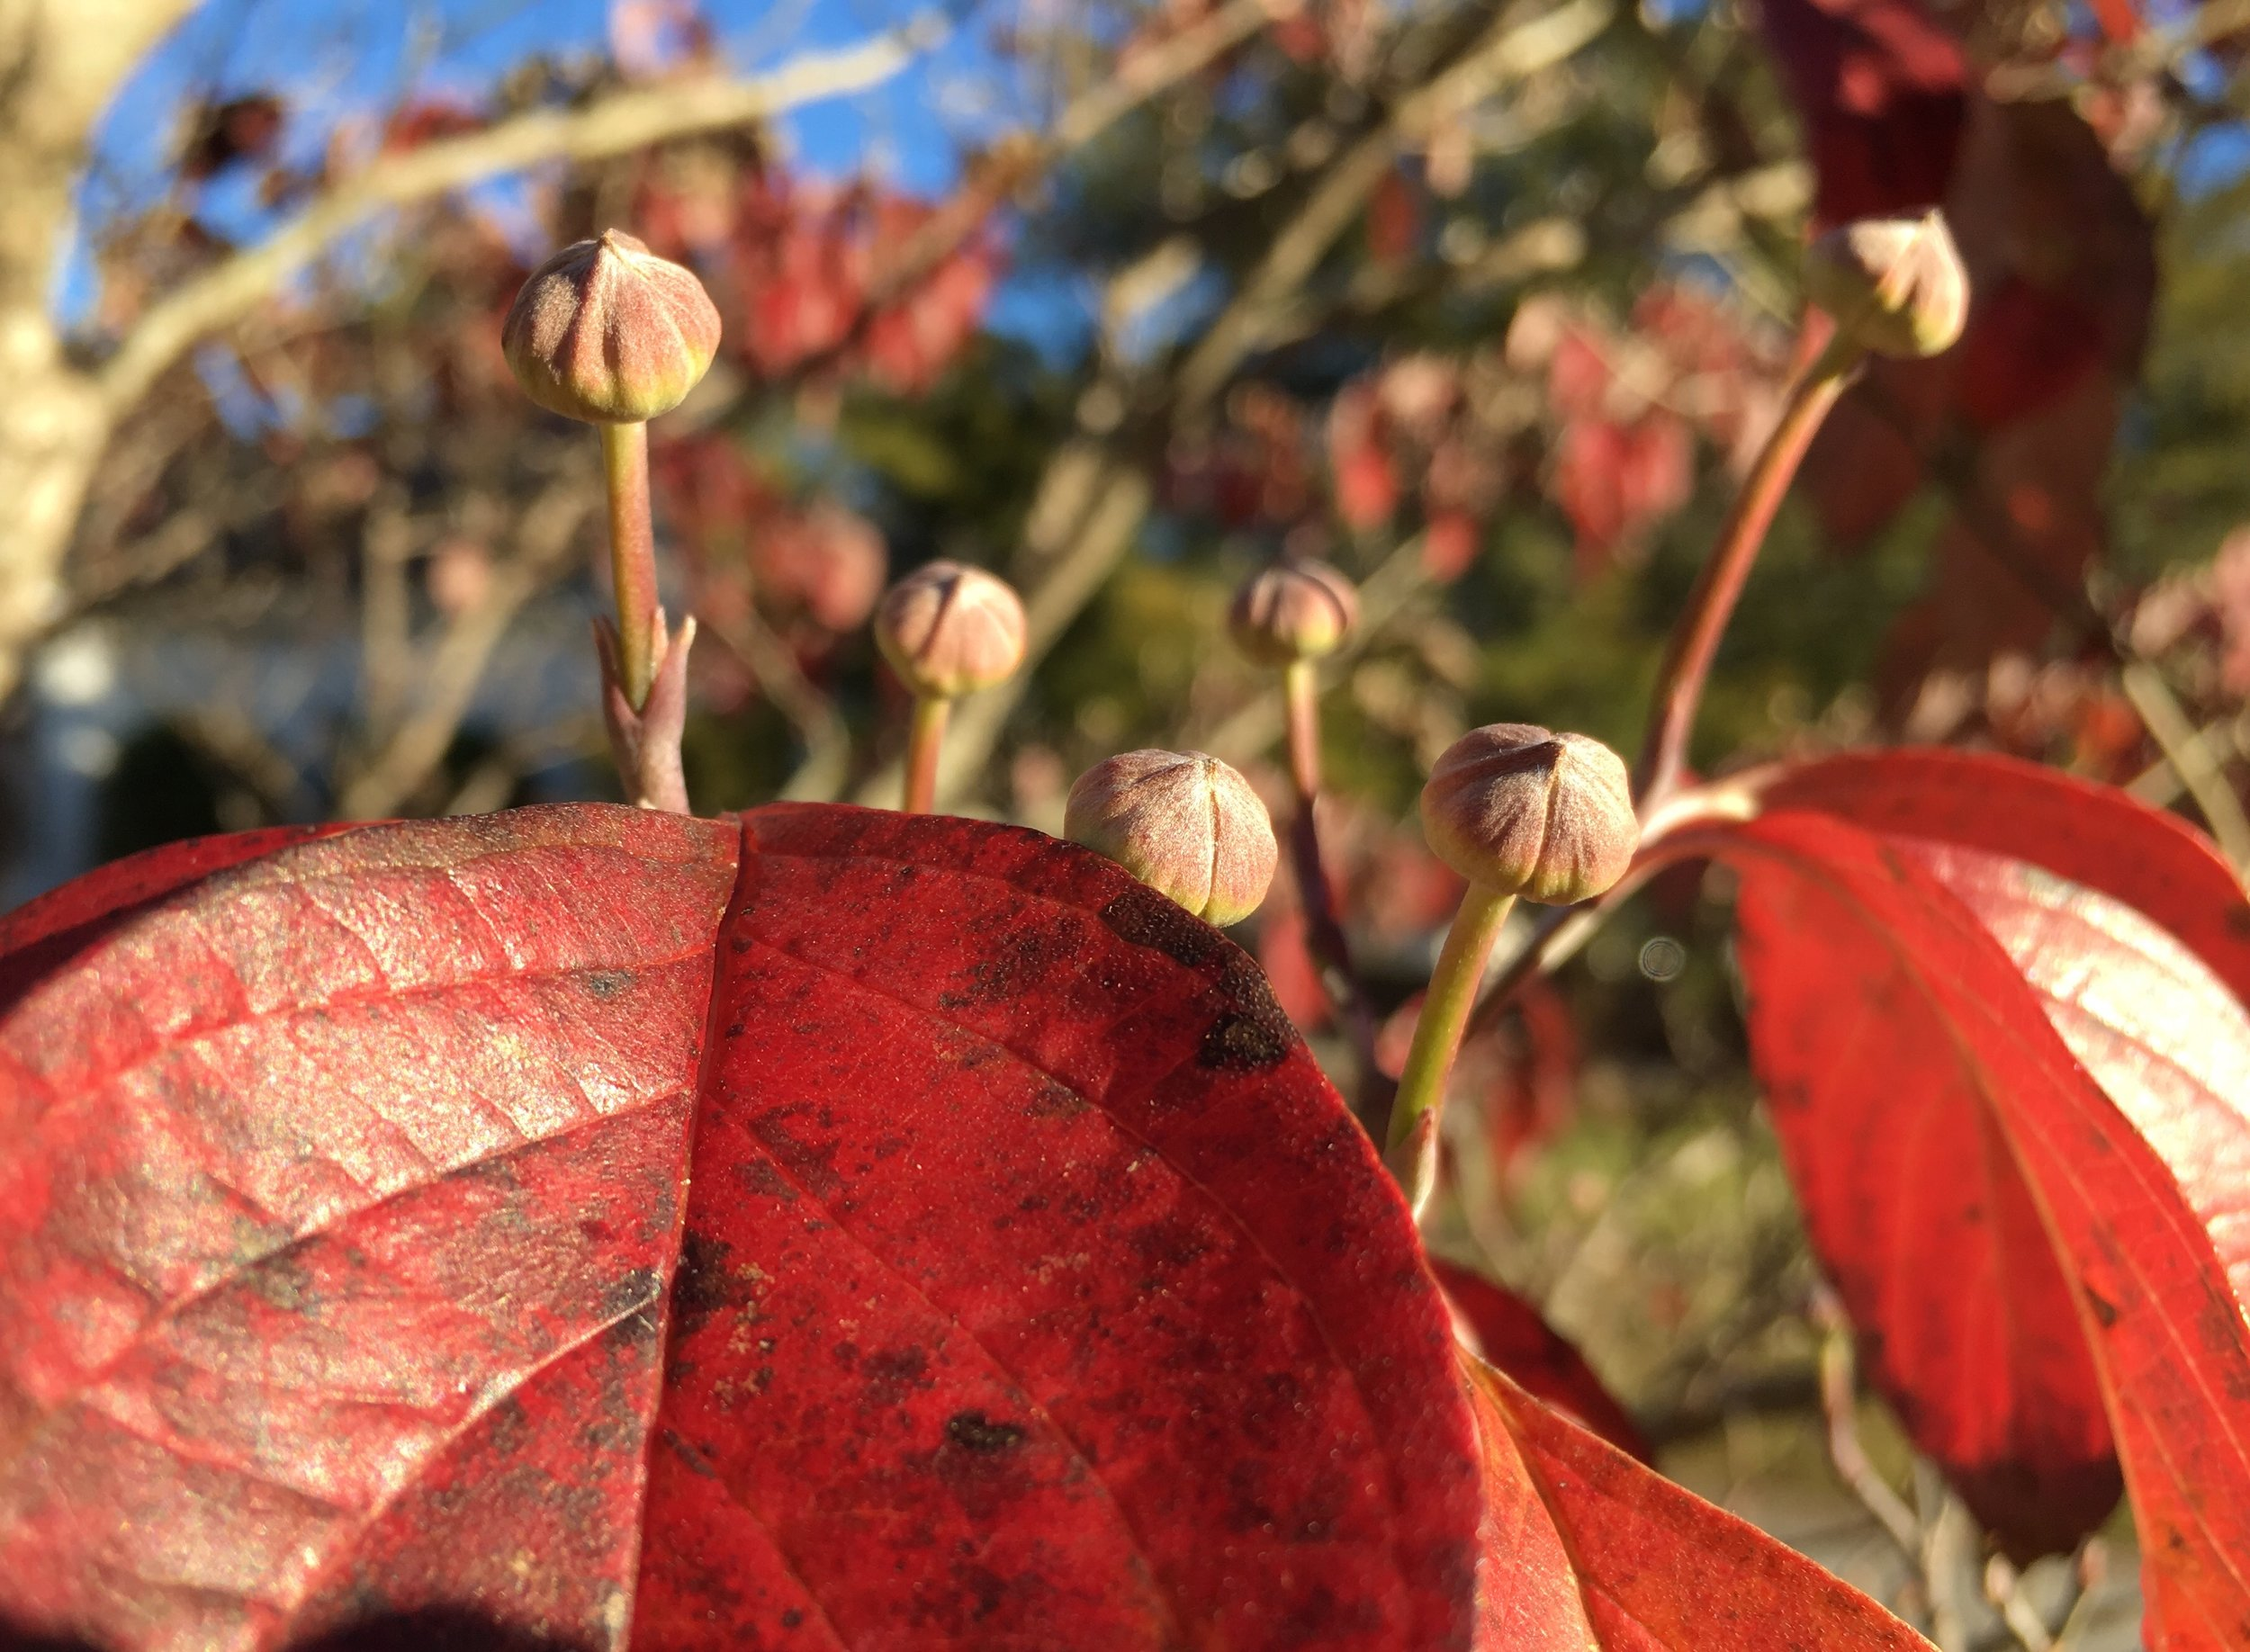 Leaves will fall, buds stay on bare branches through the winter...